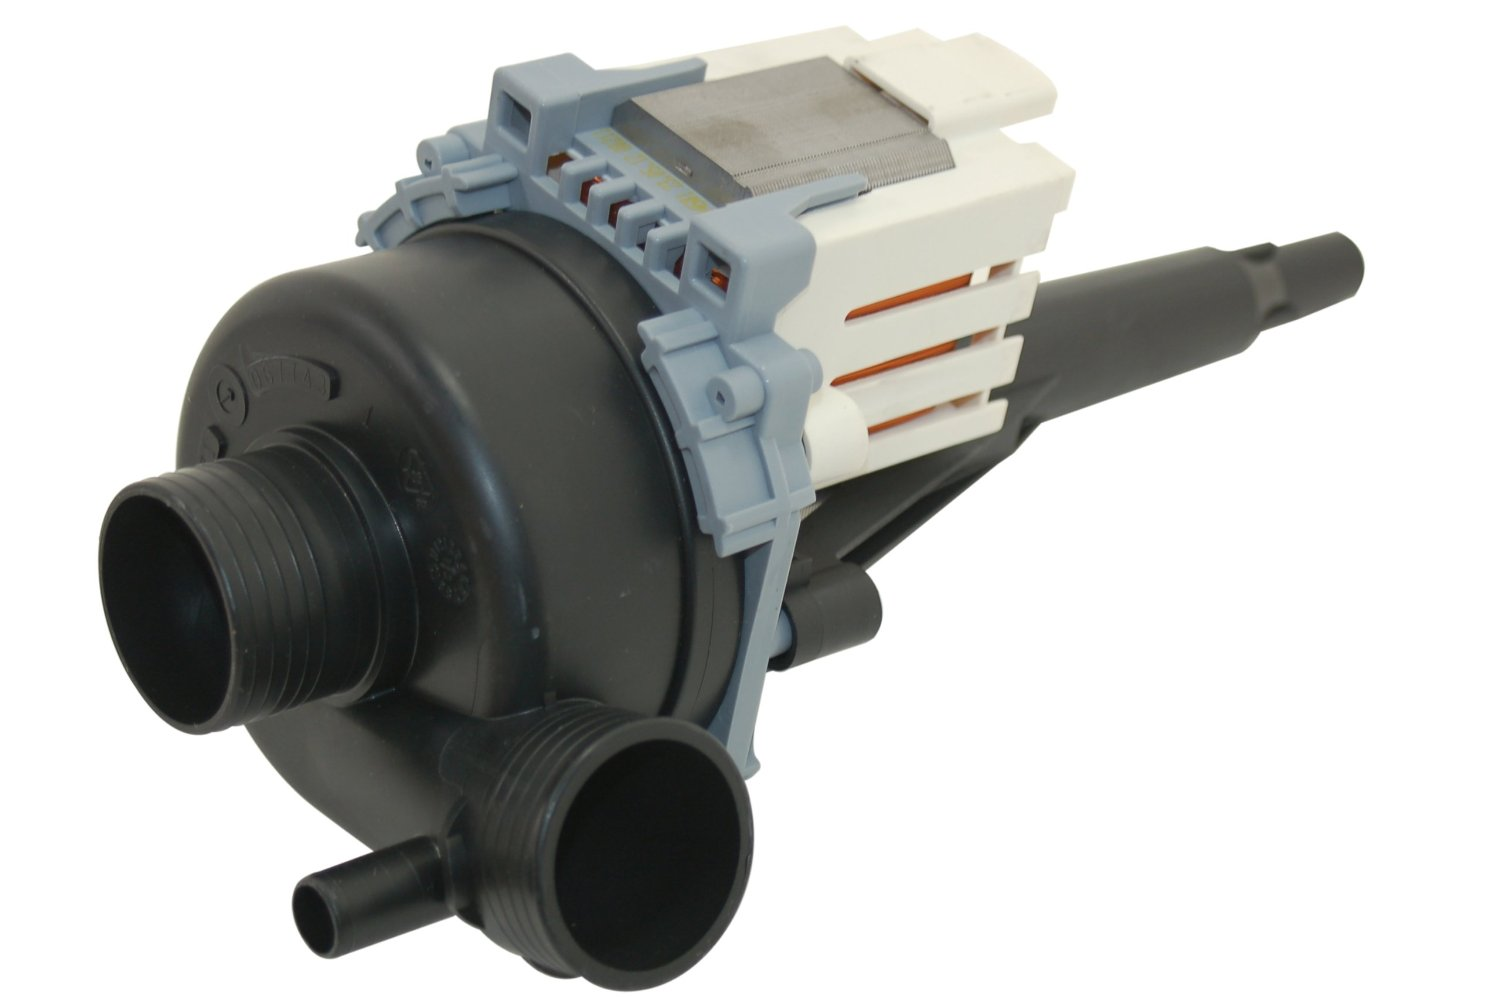 41020655 hoover candy rosieres dishwasher circulation wash pump